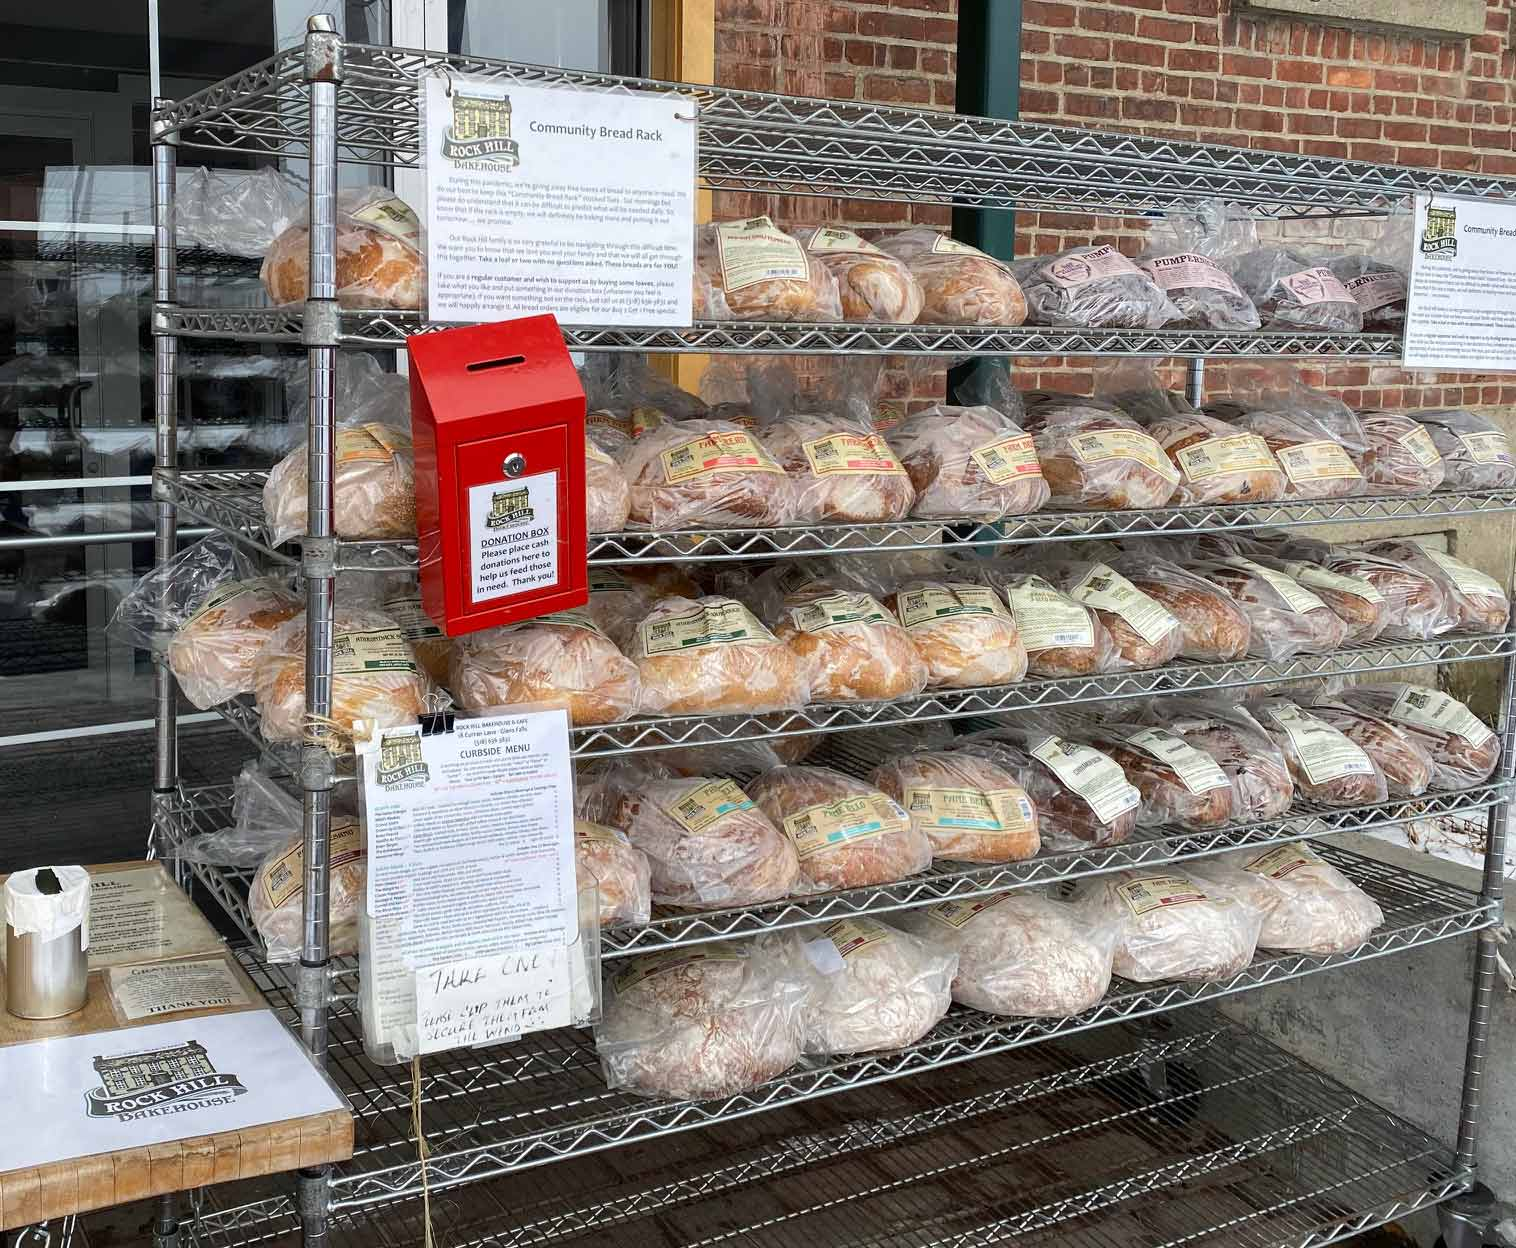 New York's Rock Hill Bakehouse & Cafe gives away 750 loaves of fresh bread every week using a no-questions-asked Community Bread Rack.